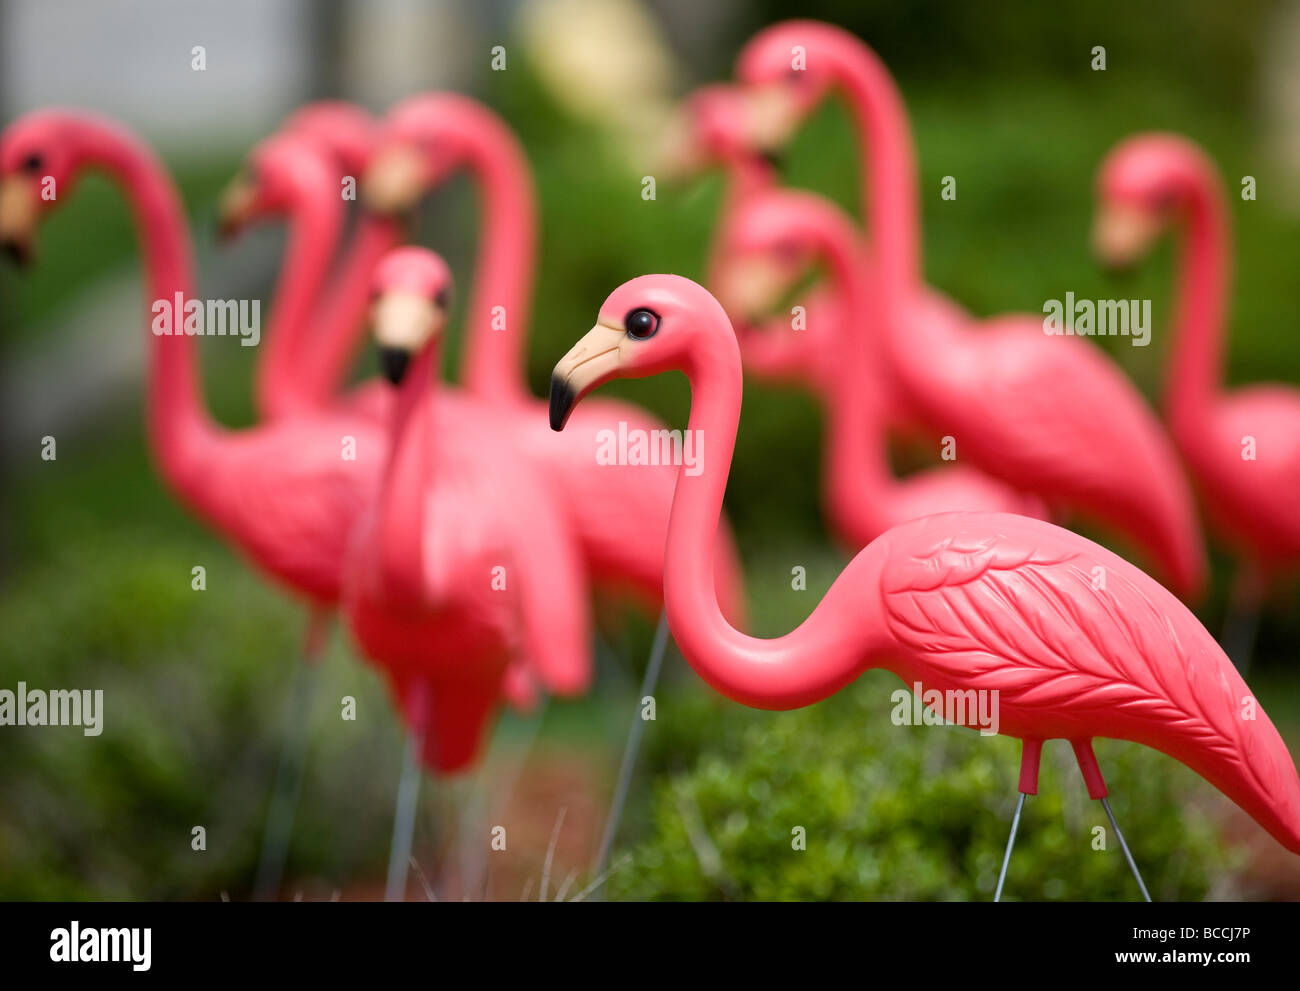 A flock of plastic pink flamingos decorate a lawn. - Stock Image